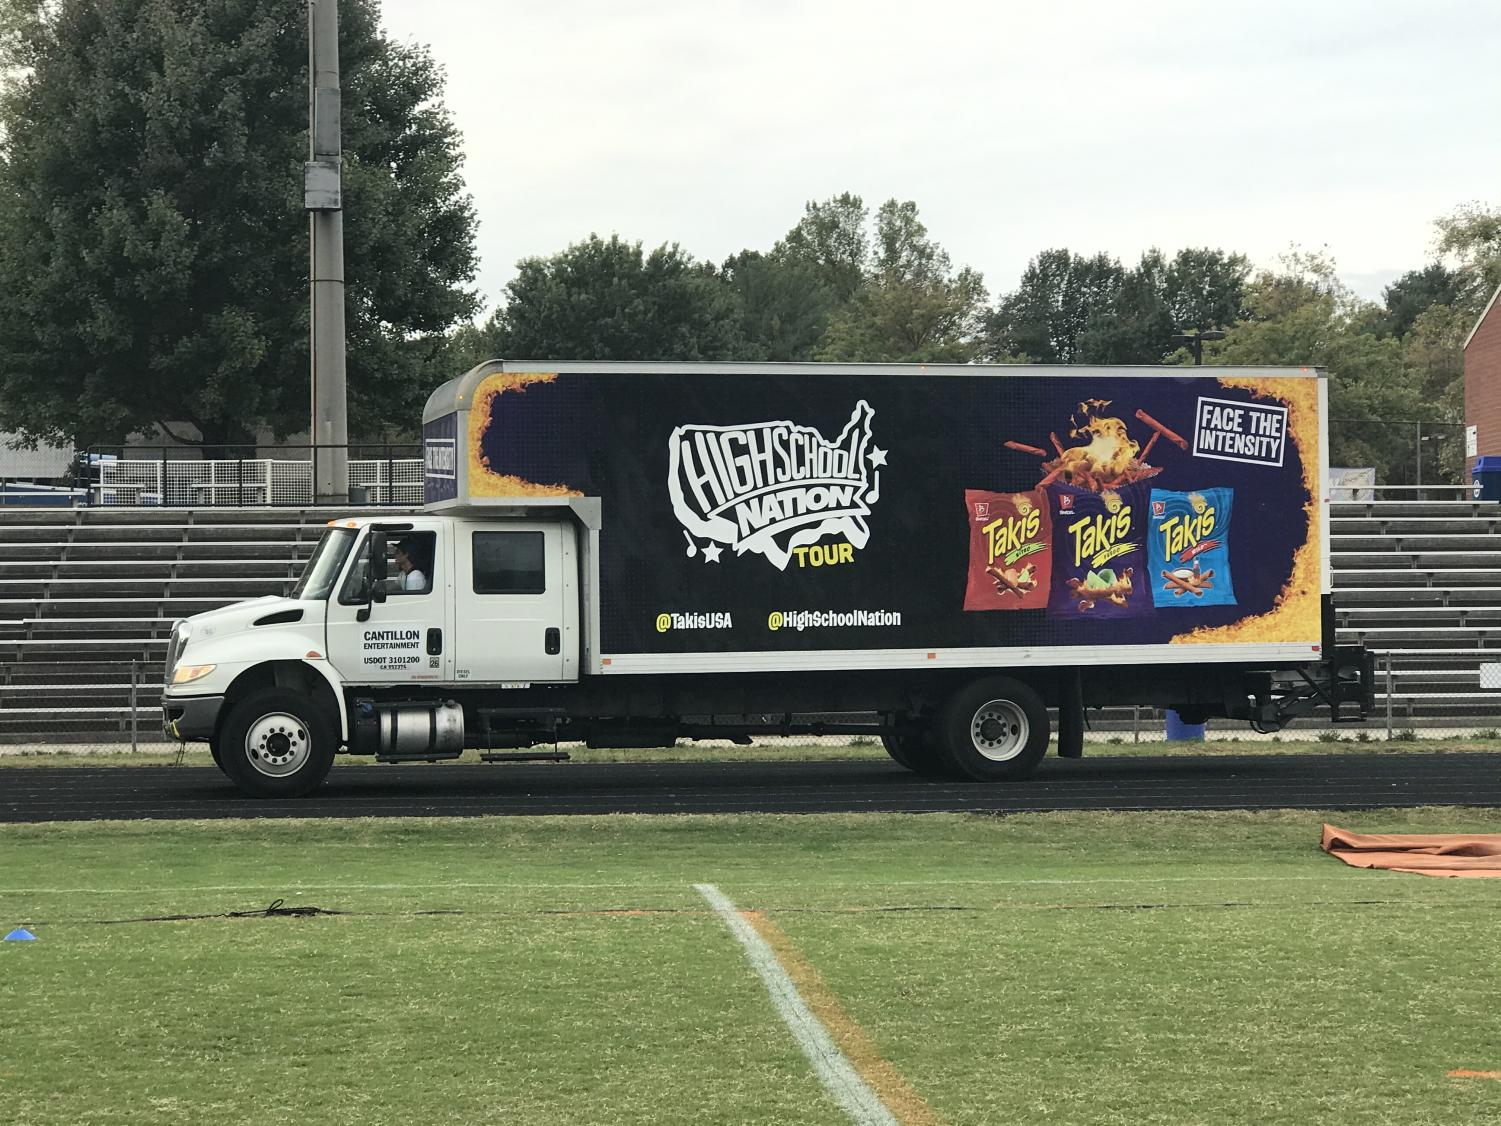 California-based company High School Nation has partnered with Hollister, Takis, Sparkling Ice, and multiple other companies to bring music experiences to students across the nation.